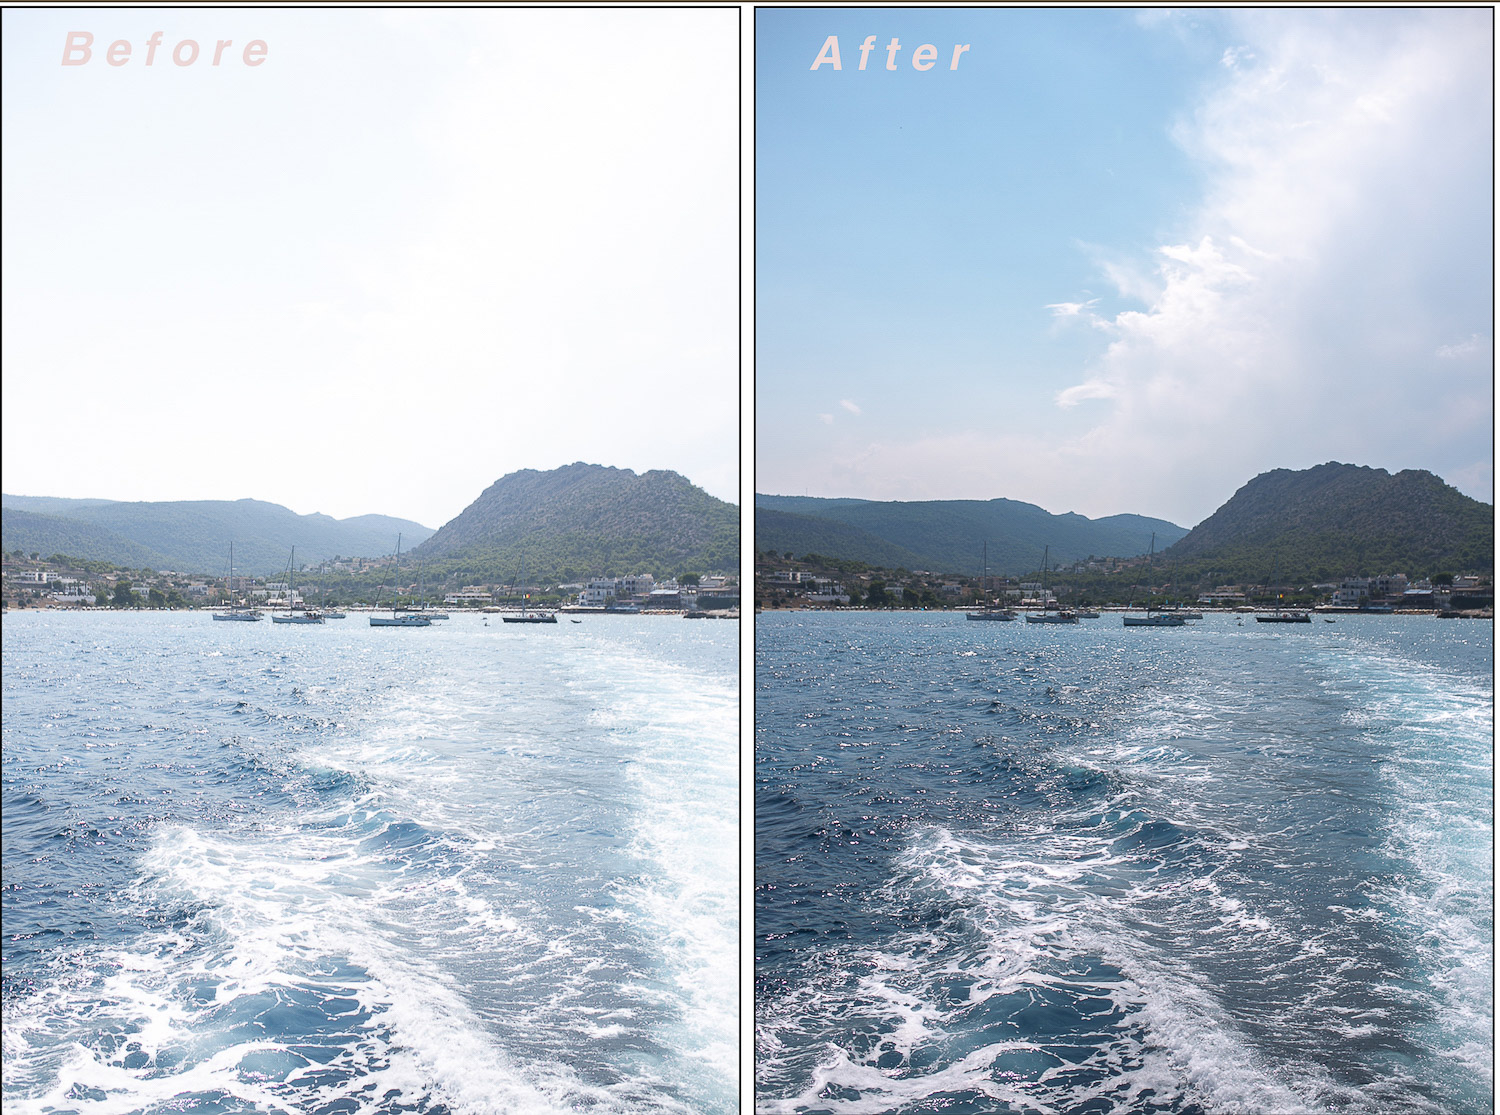 How to Achieve a Consistent and Clean Photo Editing Style - Focus on Lighting example 01